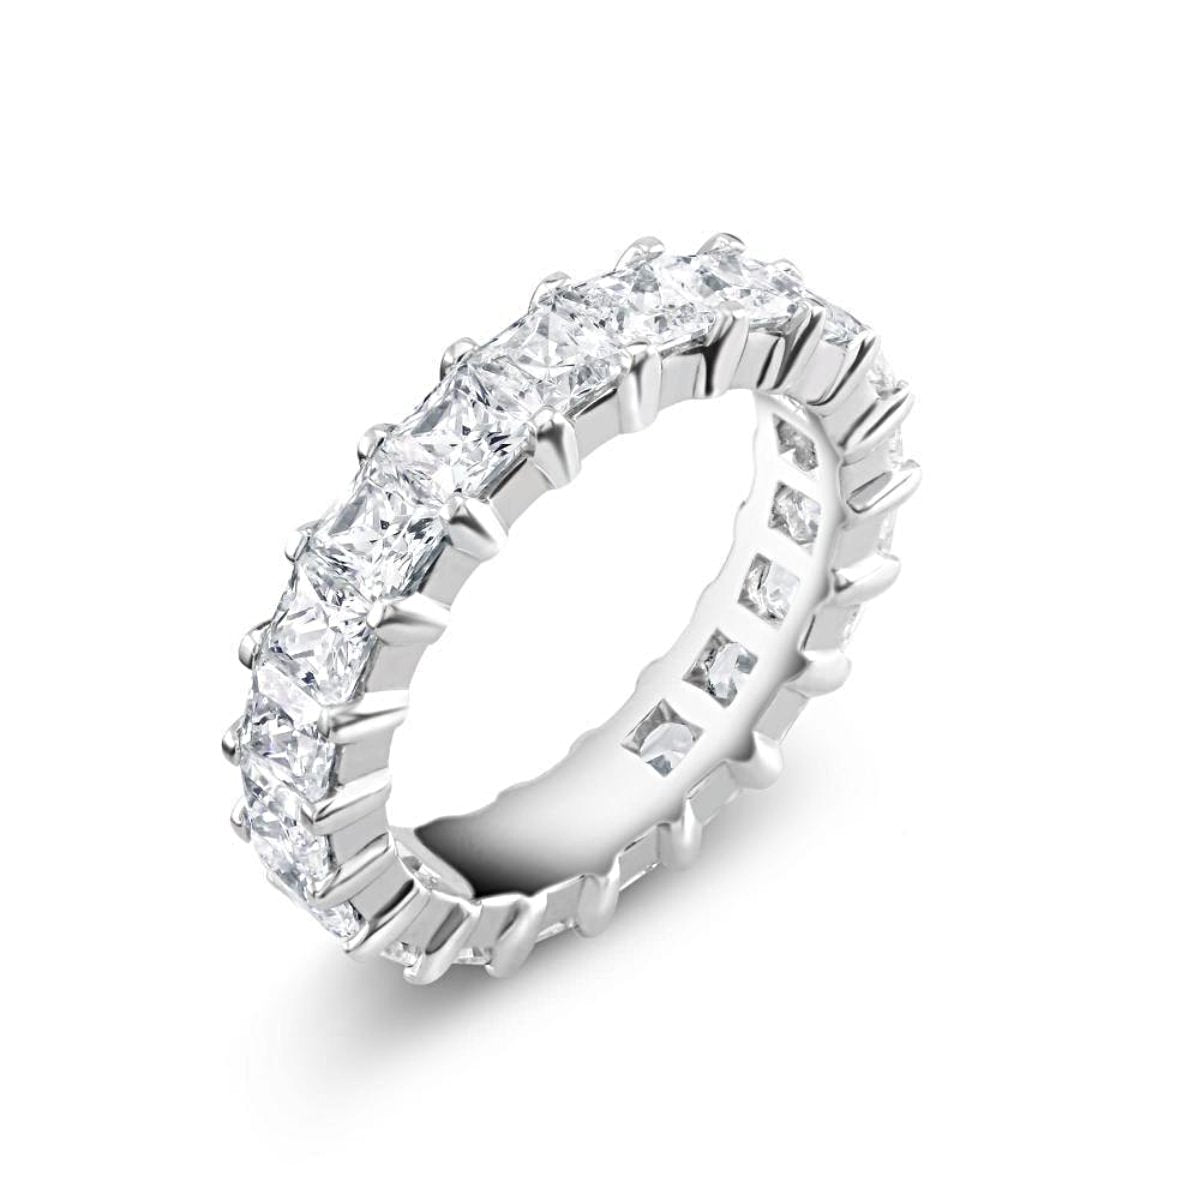 a white gold eternity prong set princess cut diamond wedding ring weighing 450 carats - Princess Cut Diamond Wedding Rings